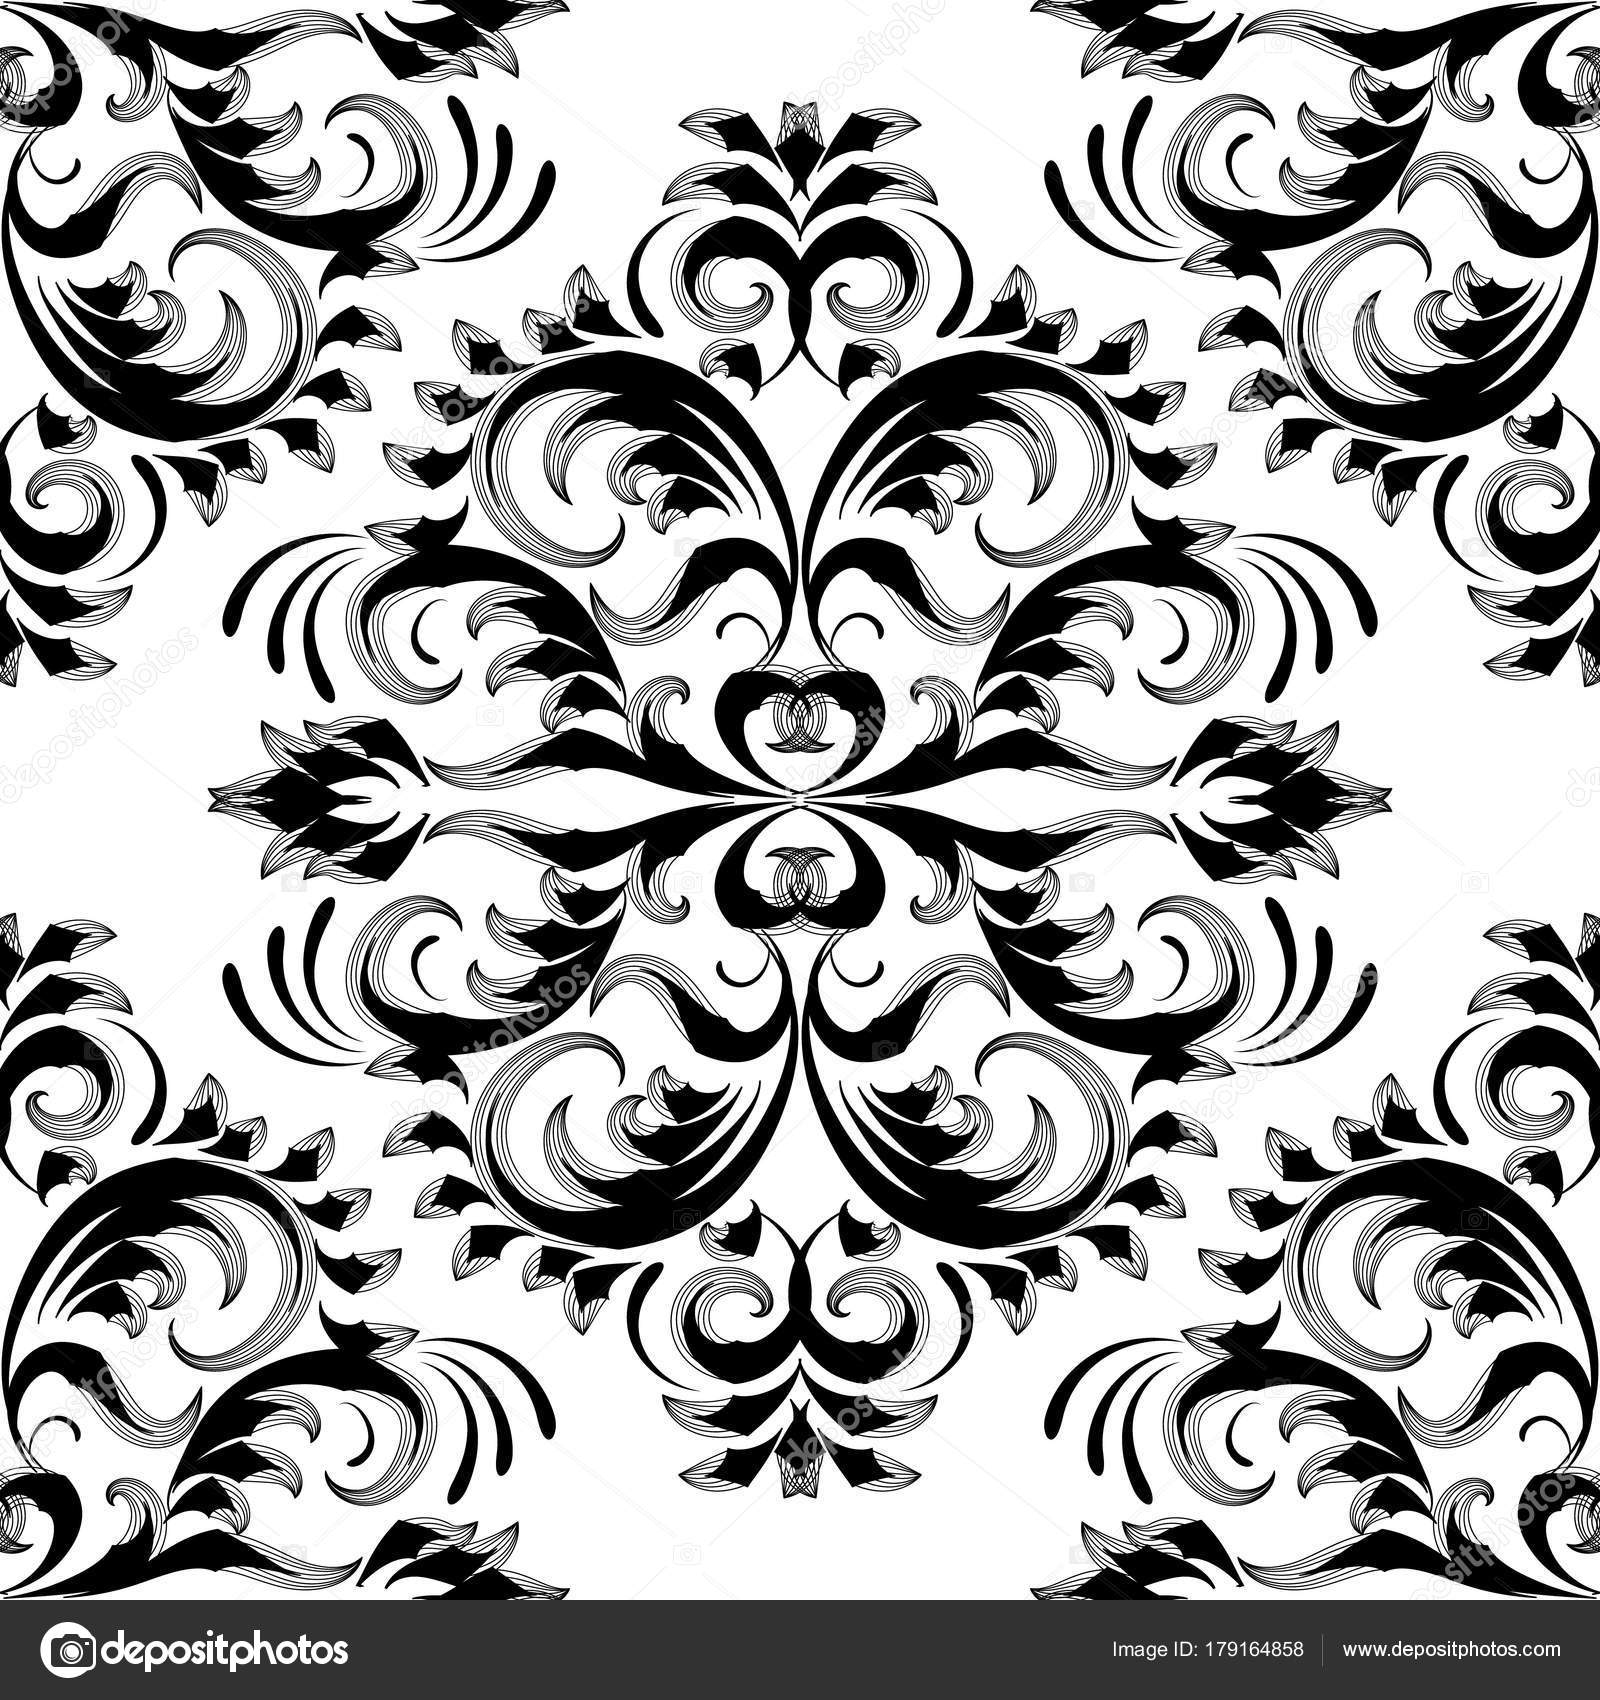 Vintage Floral Damask Seamless Pattern Black White Vector Stock